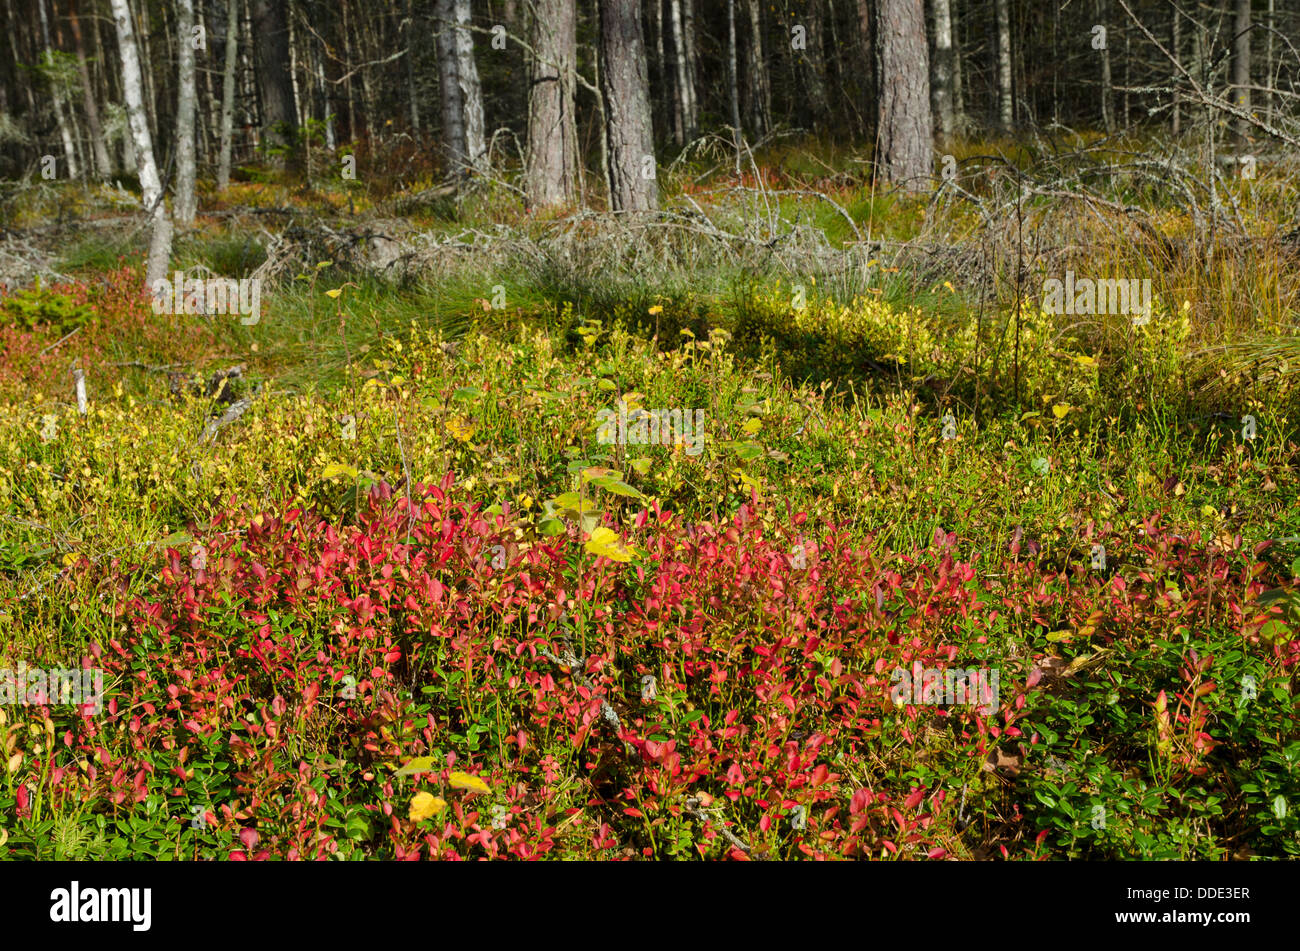 Lingonberry sprigs in autumn colour - Stock Image